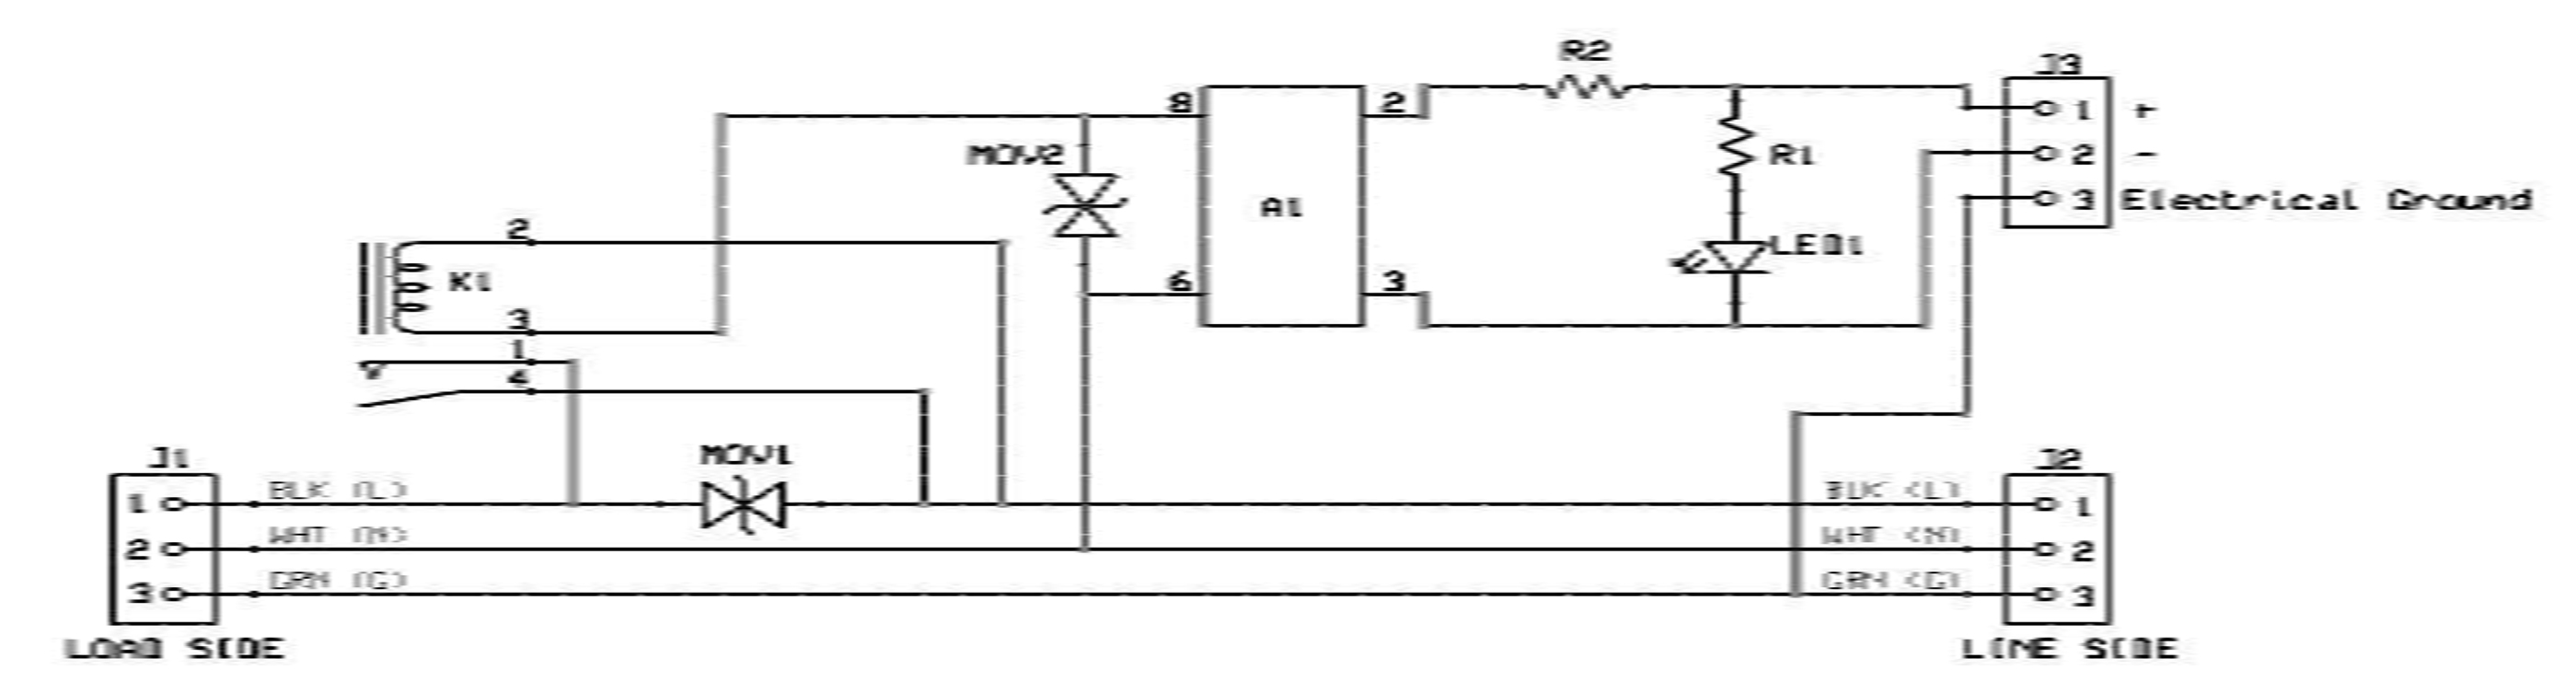 Drivers Relays And Solid State Mbed Npn Transistor Switch Circuit Power Tail Ii Schematic